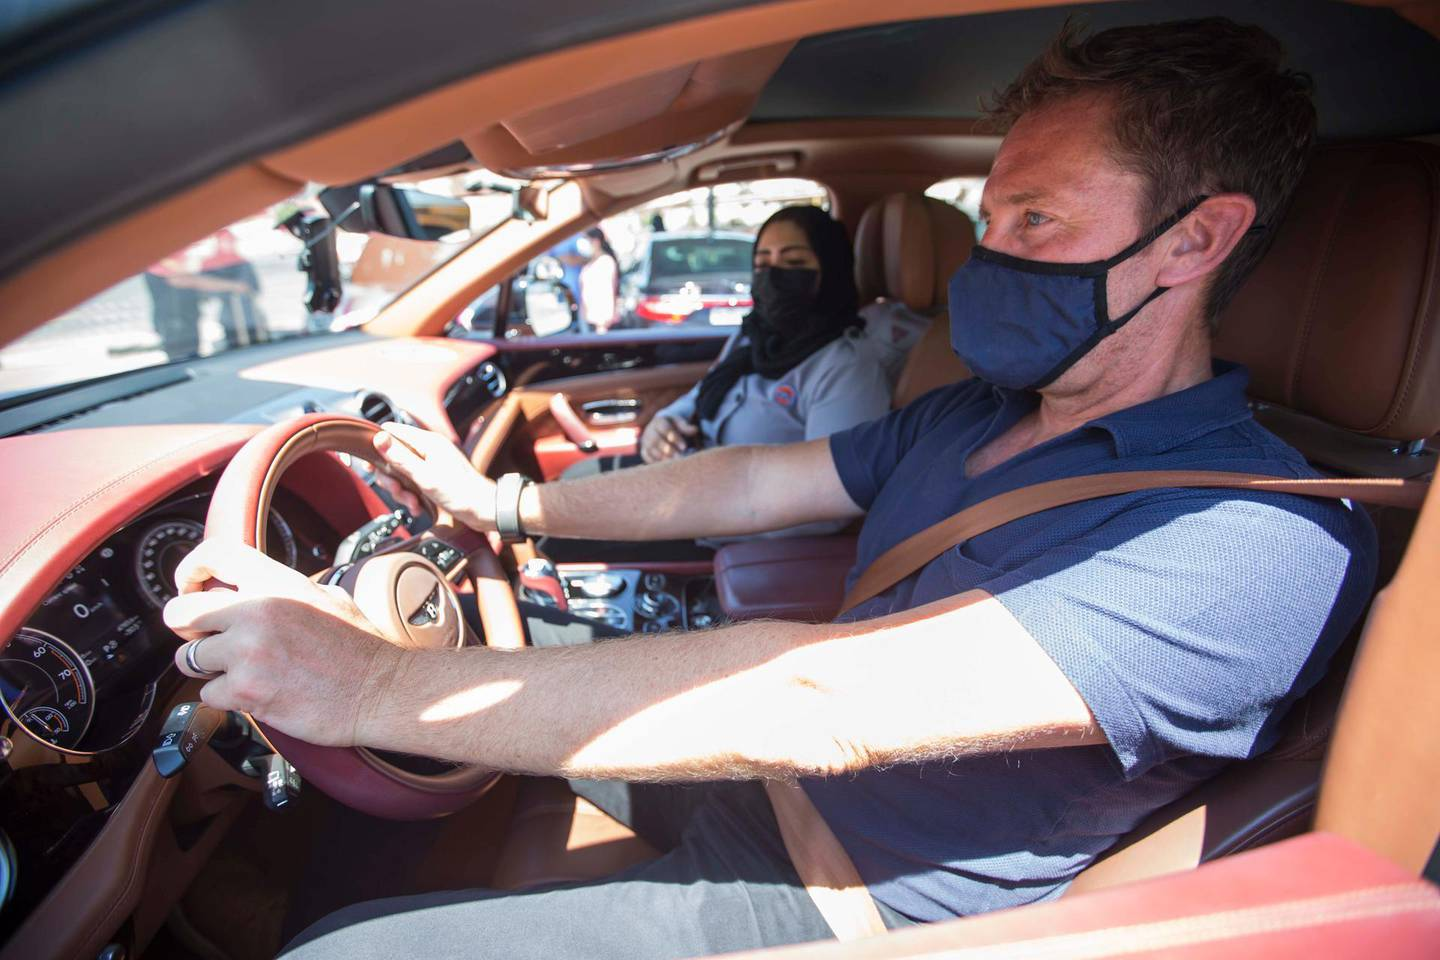 Dubai, United Arab Emirates - Driving instructor Zubeida with a Bentley car instructing Nick Webster at the Emirates Driving Institute, Dubai.  Leslie Pableo for The National